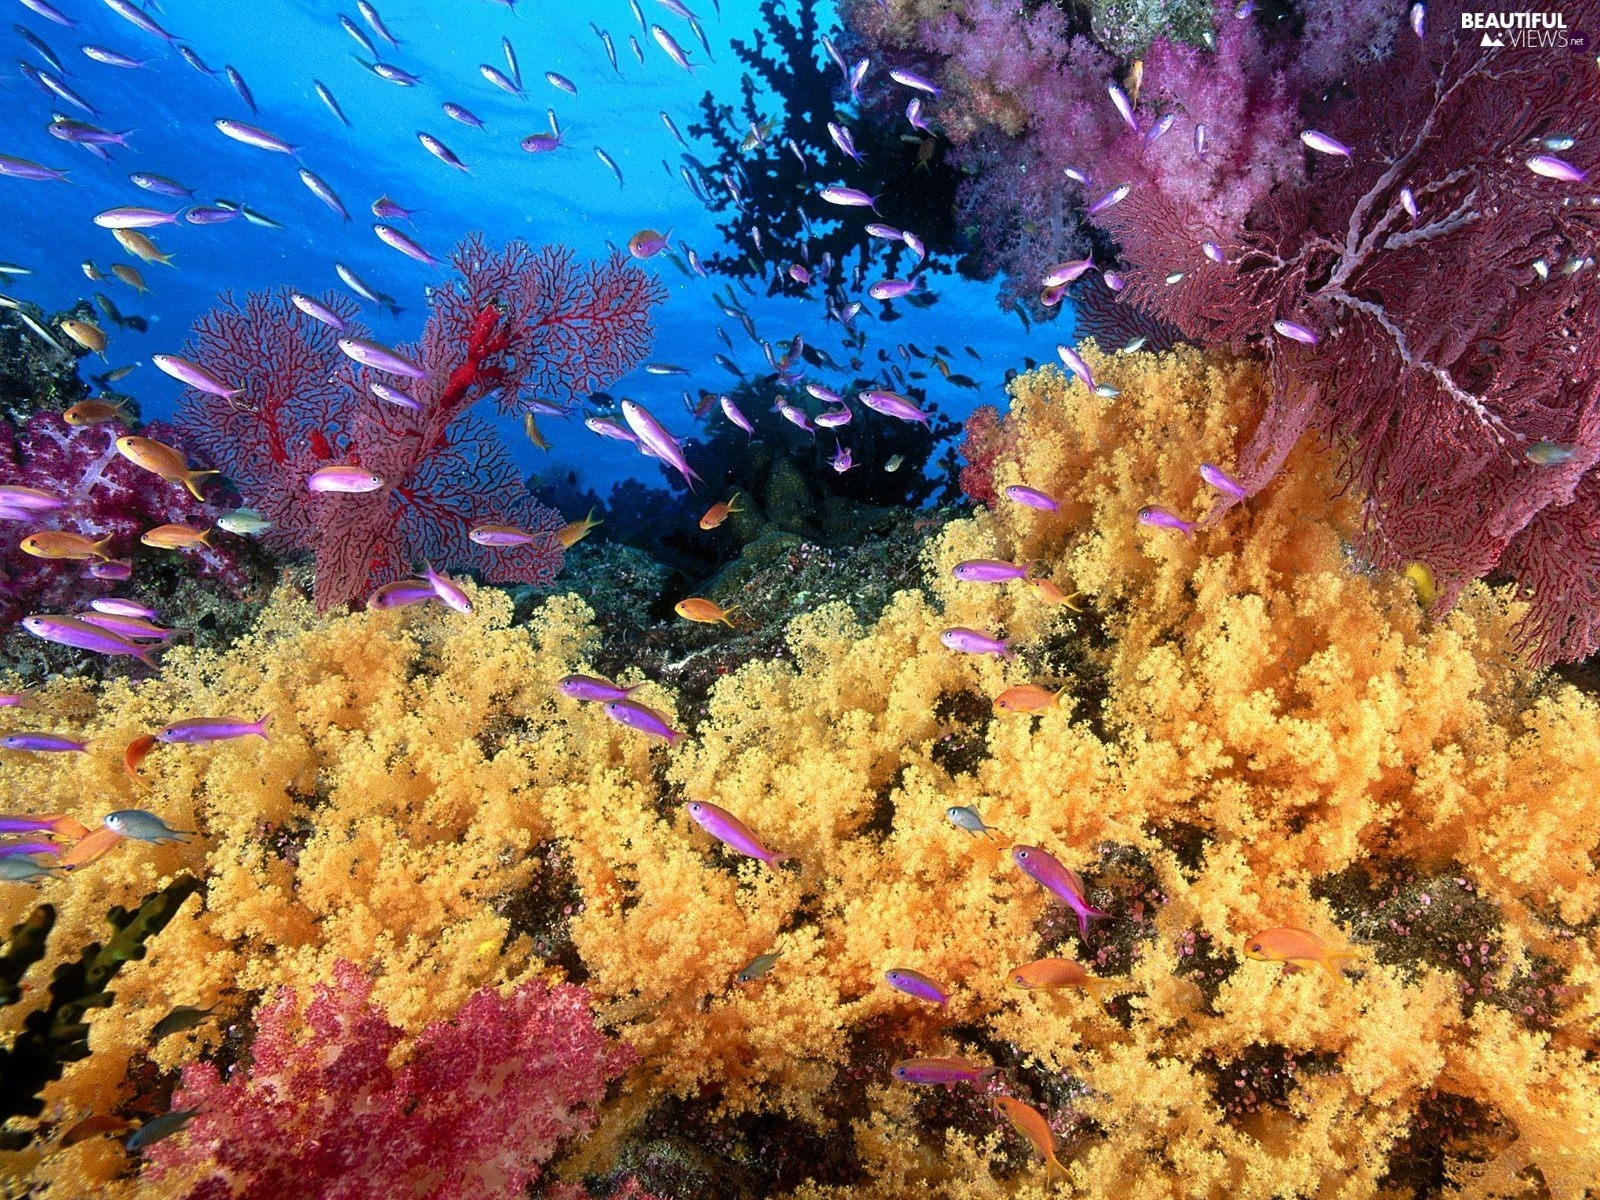 coral, underwater, reef - Beautiful views wallpapers ...